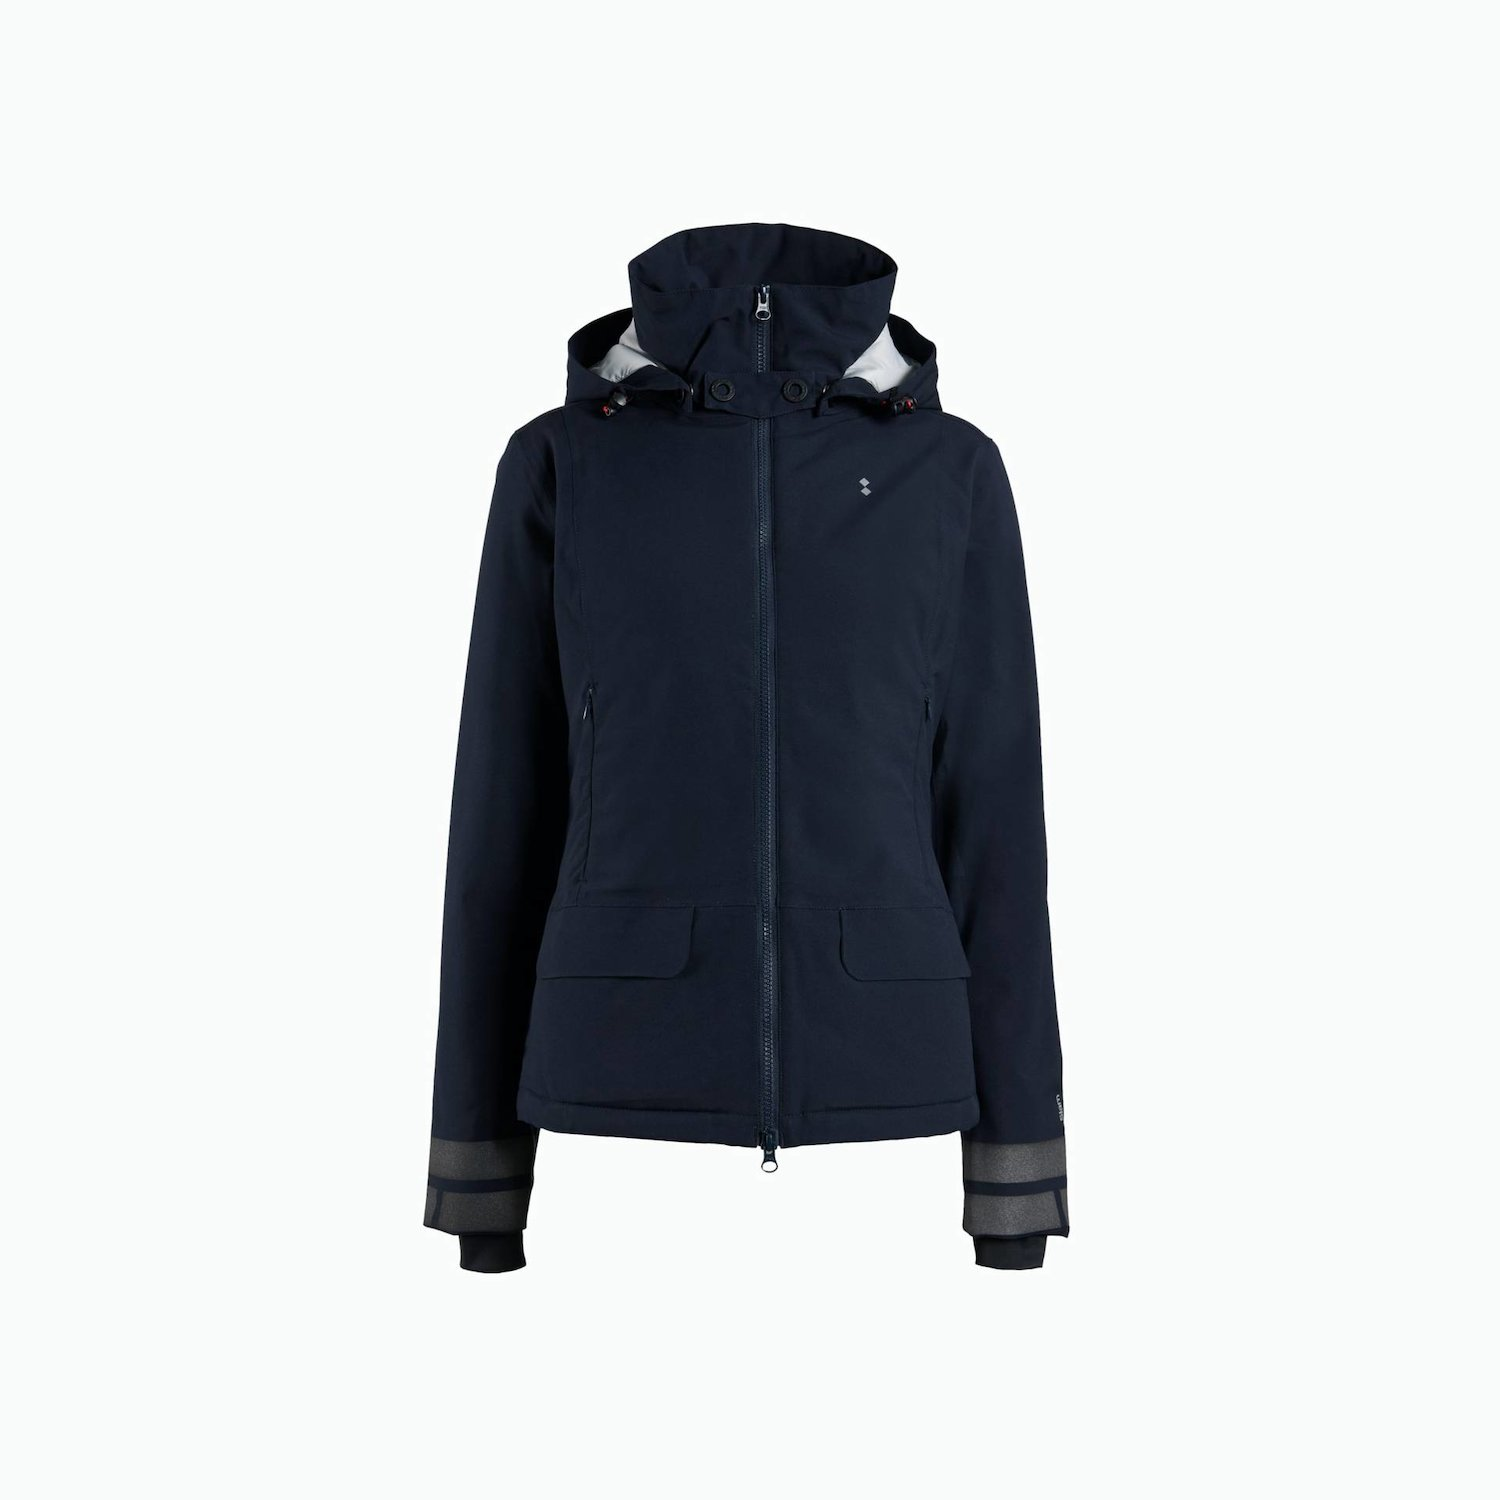 Hapuna Jacket - Navy